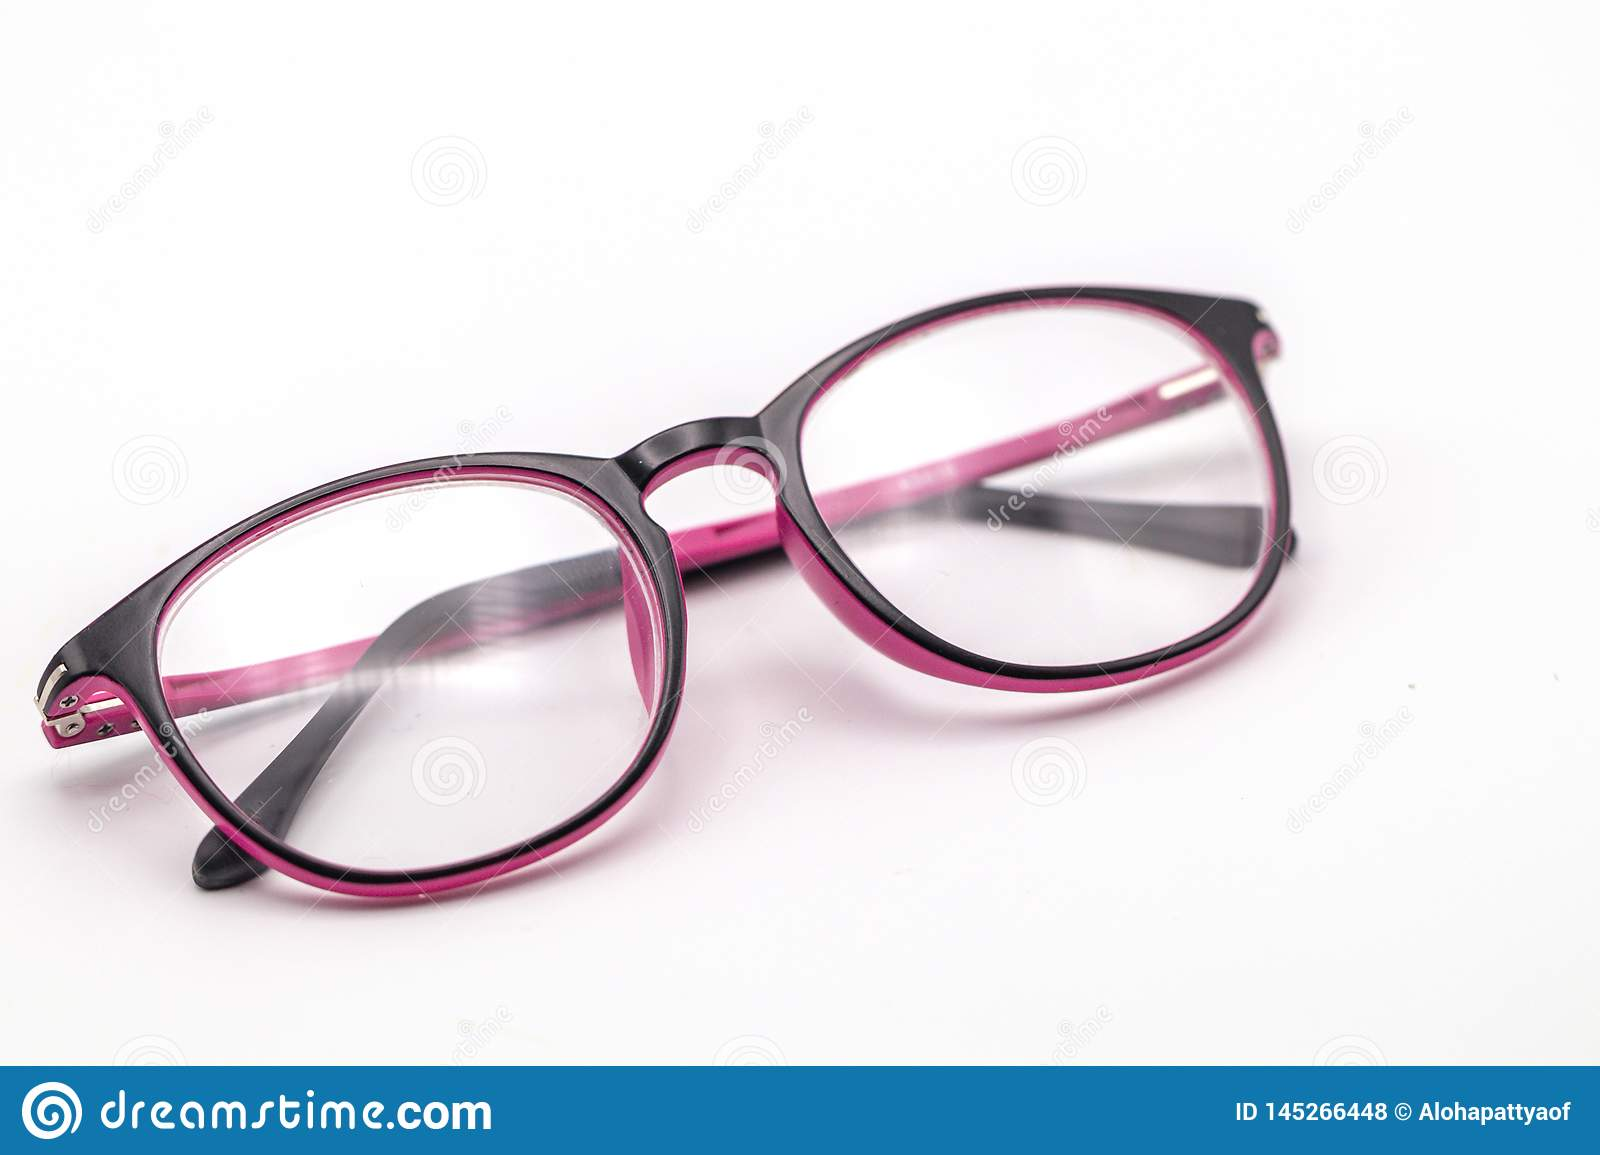 Close up black and pink eye glasses on white background.